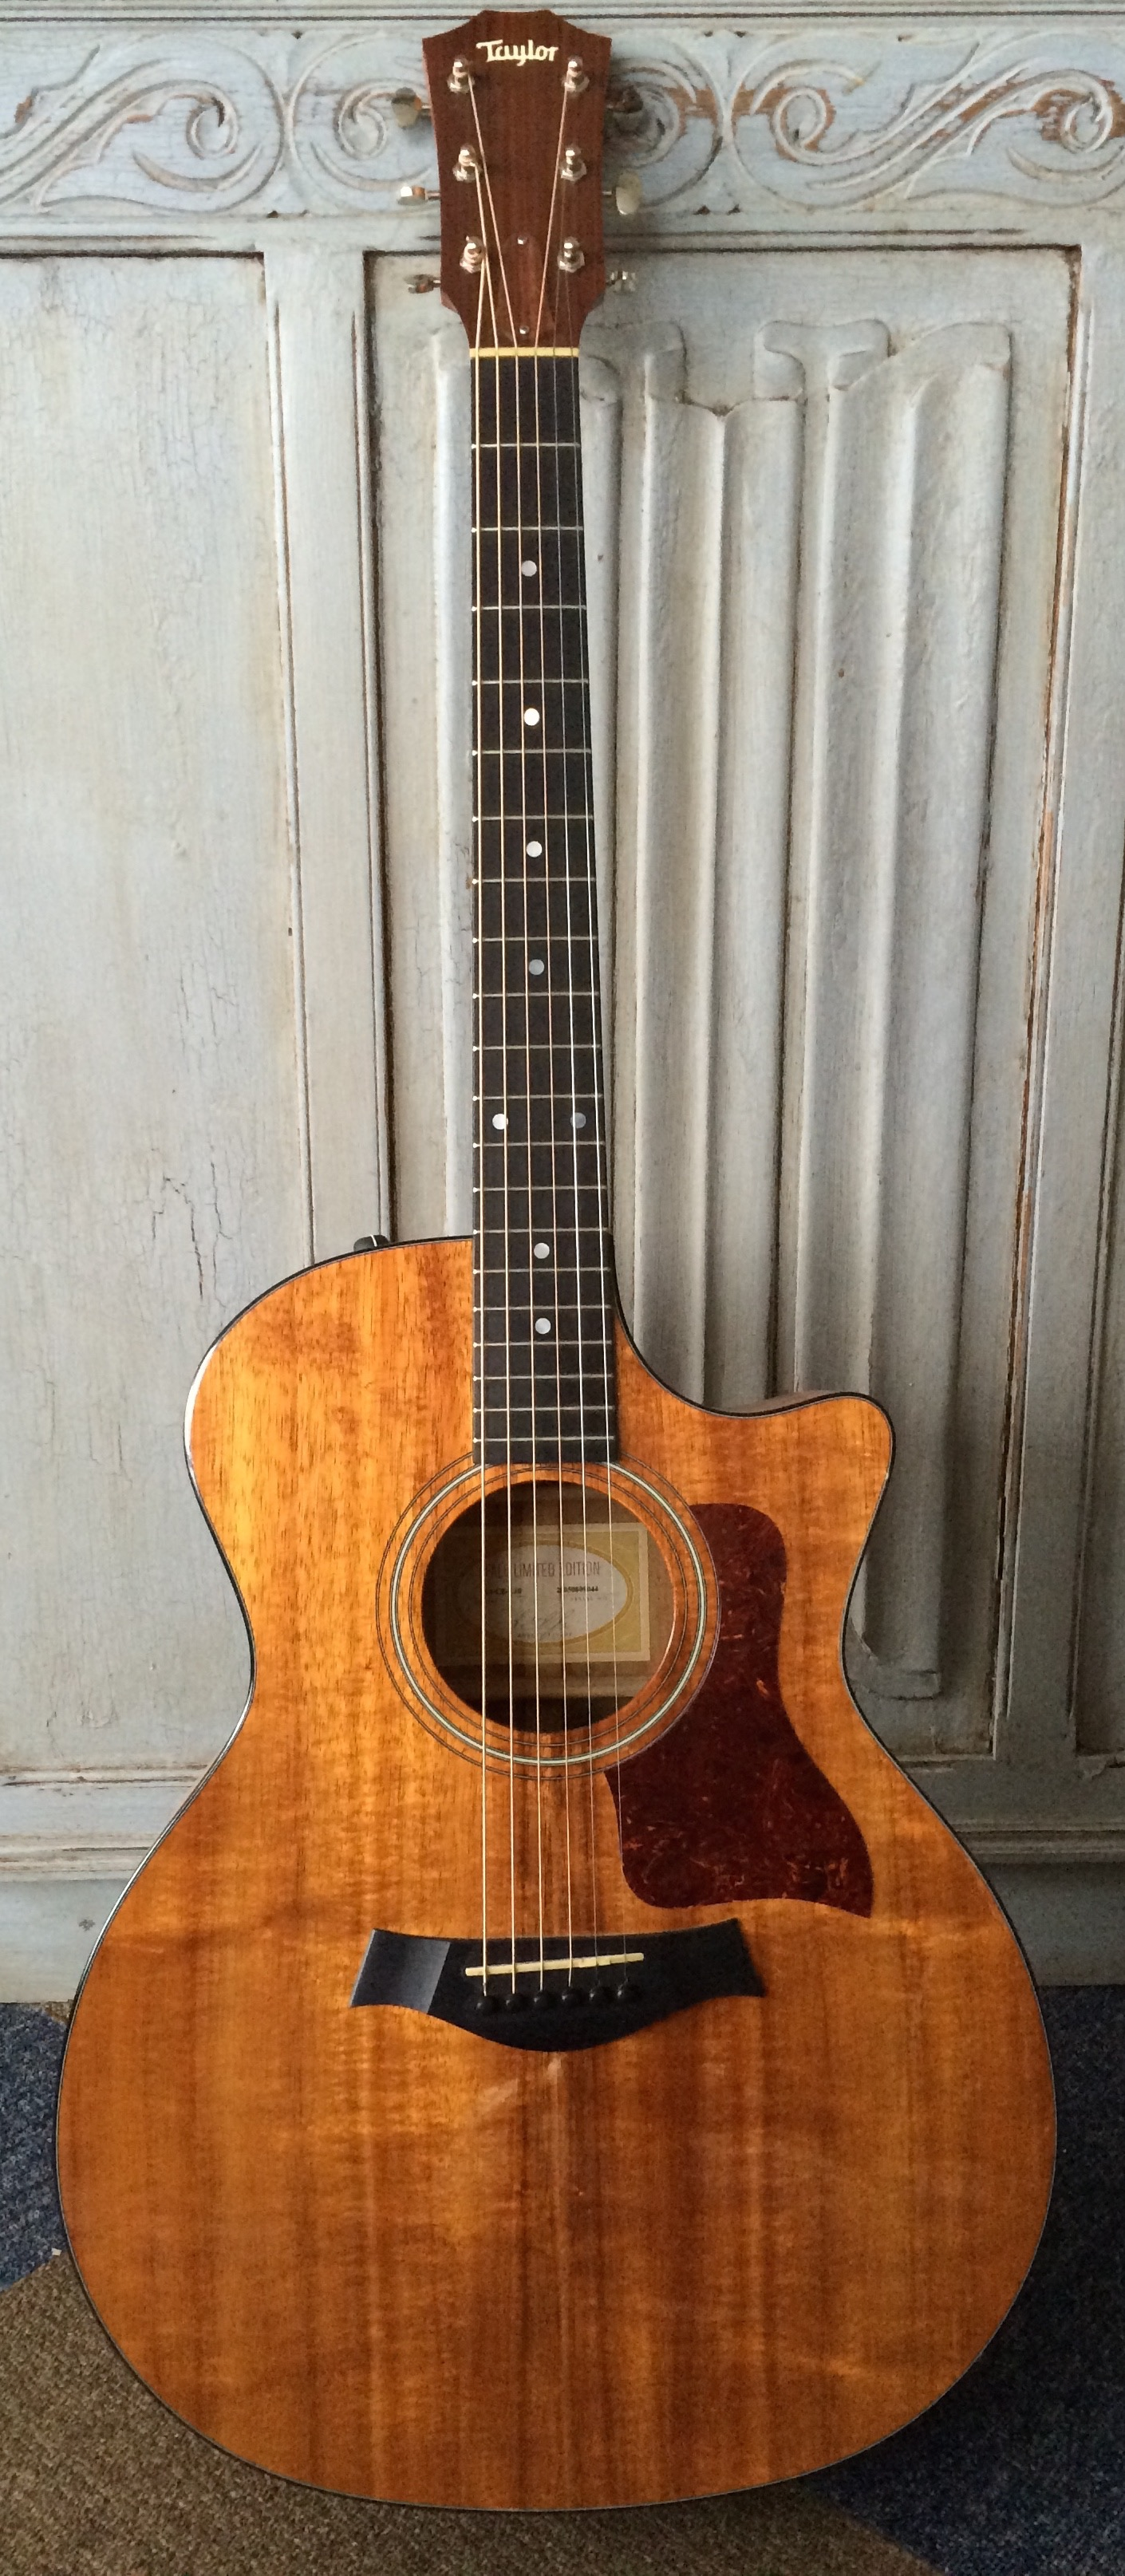 TAYLOR 324ce L10 - Nick's main guitar at the time of recording the album was a 2005 Taylor 324ce L10 (2005). This is a fall limited edition model in Grand Auditorium body shape with solid Koa front, back and sides with mahogany neck. Nick swapped the original sealed Gotoh tuners for Waverly's which are much lighter and improve the balance of the guitar, as the body is very light. They also look great.Over the last decade the guitar has matured beautifully and both Nick and A.J agree that this is one of the finest Taylor's either has played, despite being a comparatively low on bling 3 series. With a clear and defined tone across the entire scale length it is especially impressive within a band environment.It is also fitted with Taylor's Expression System pickup, however Nick likes to keep the batteries out unless at a plugged in gig, as he finds the the extra weight effects the response of such a lightweight guitar.